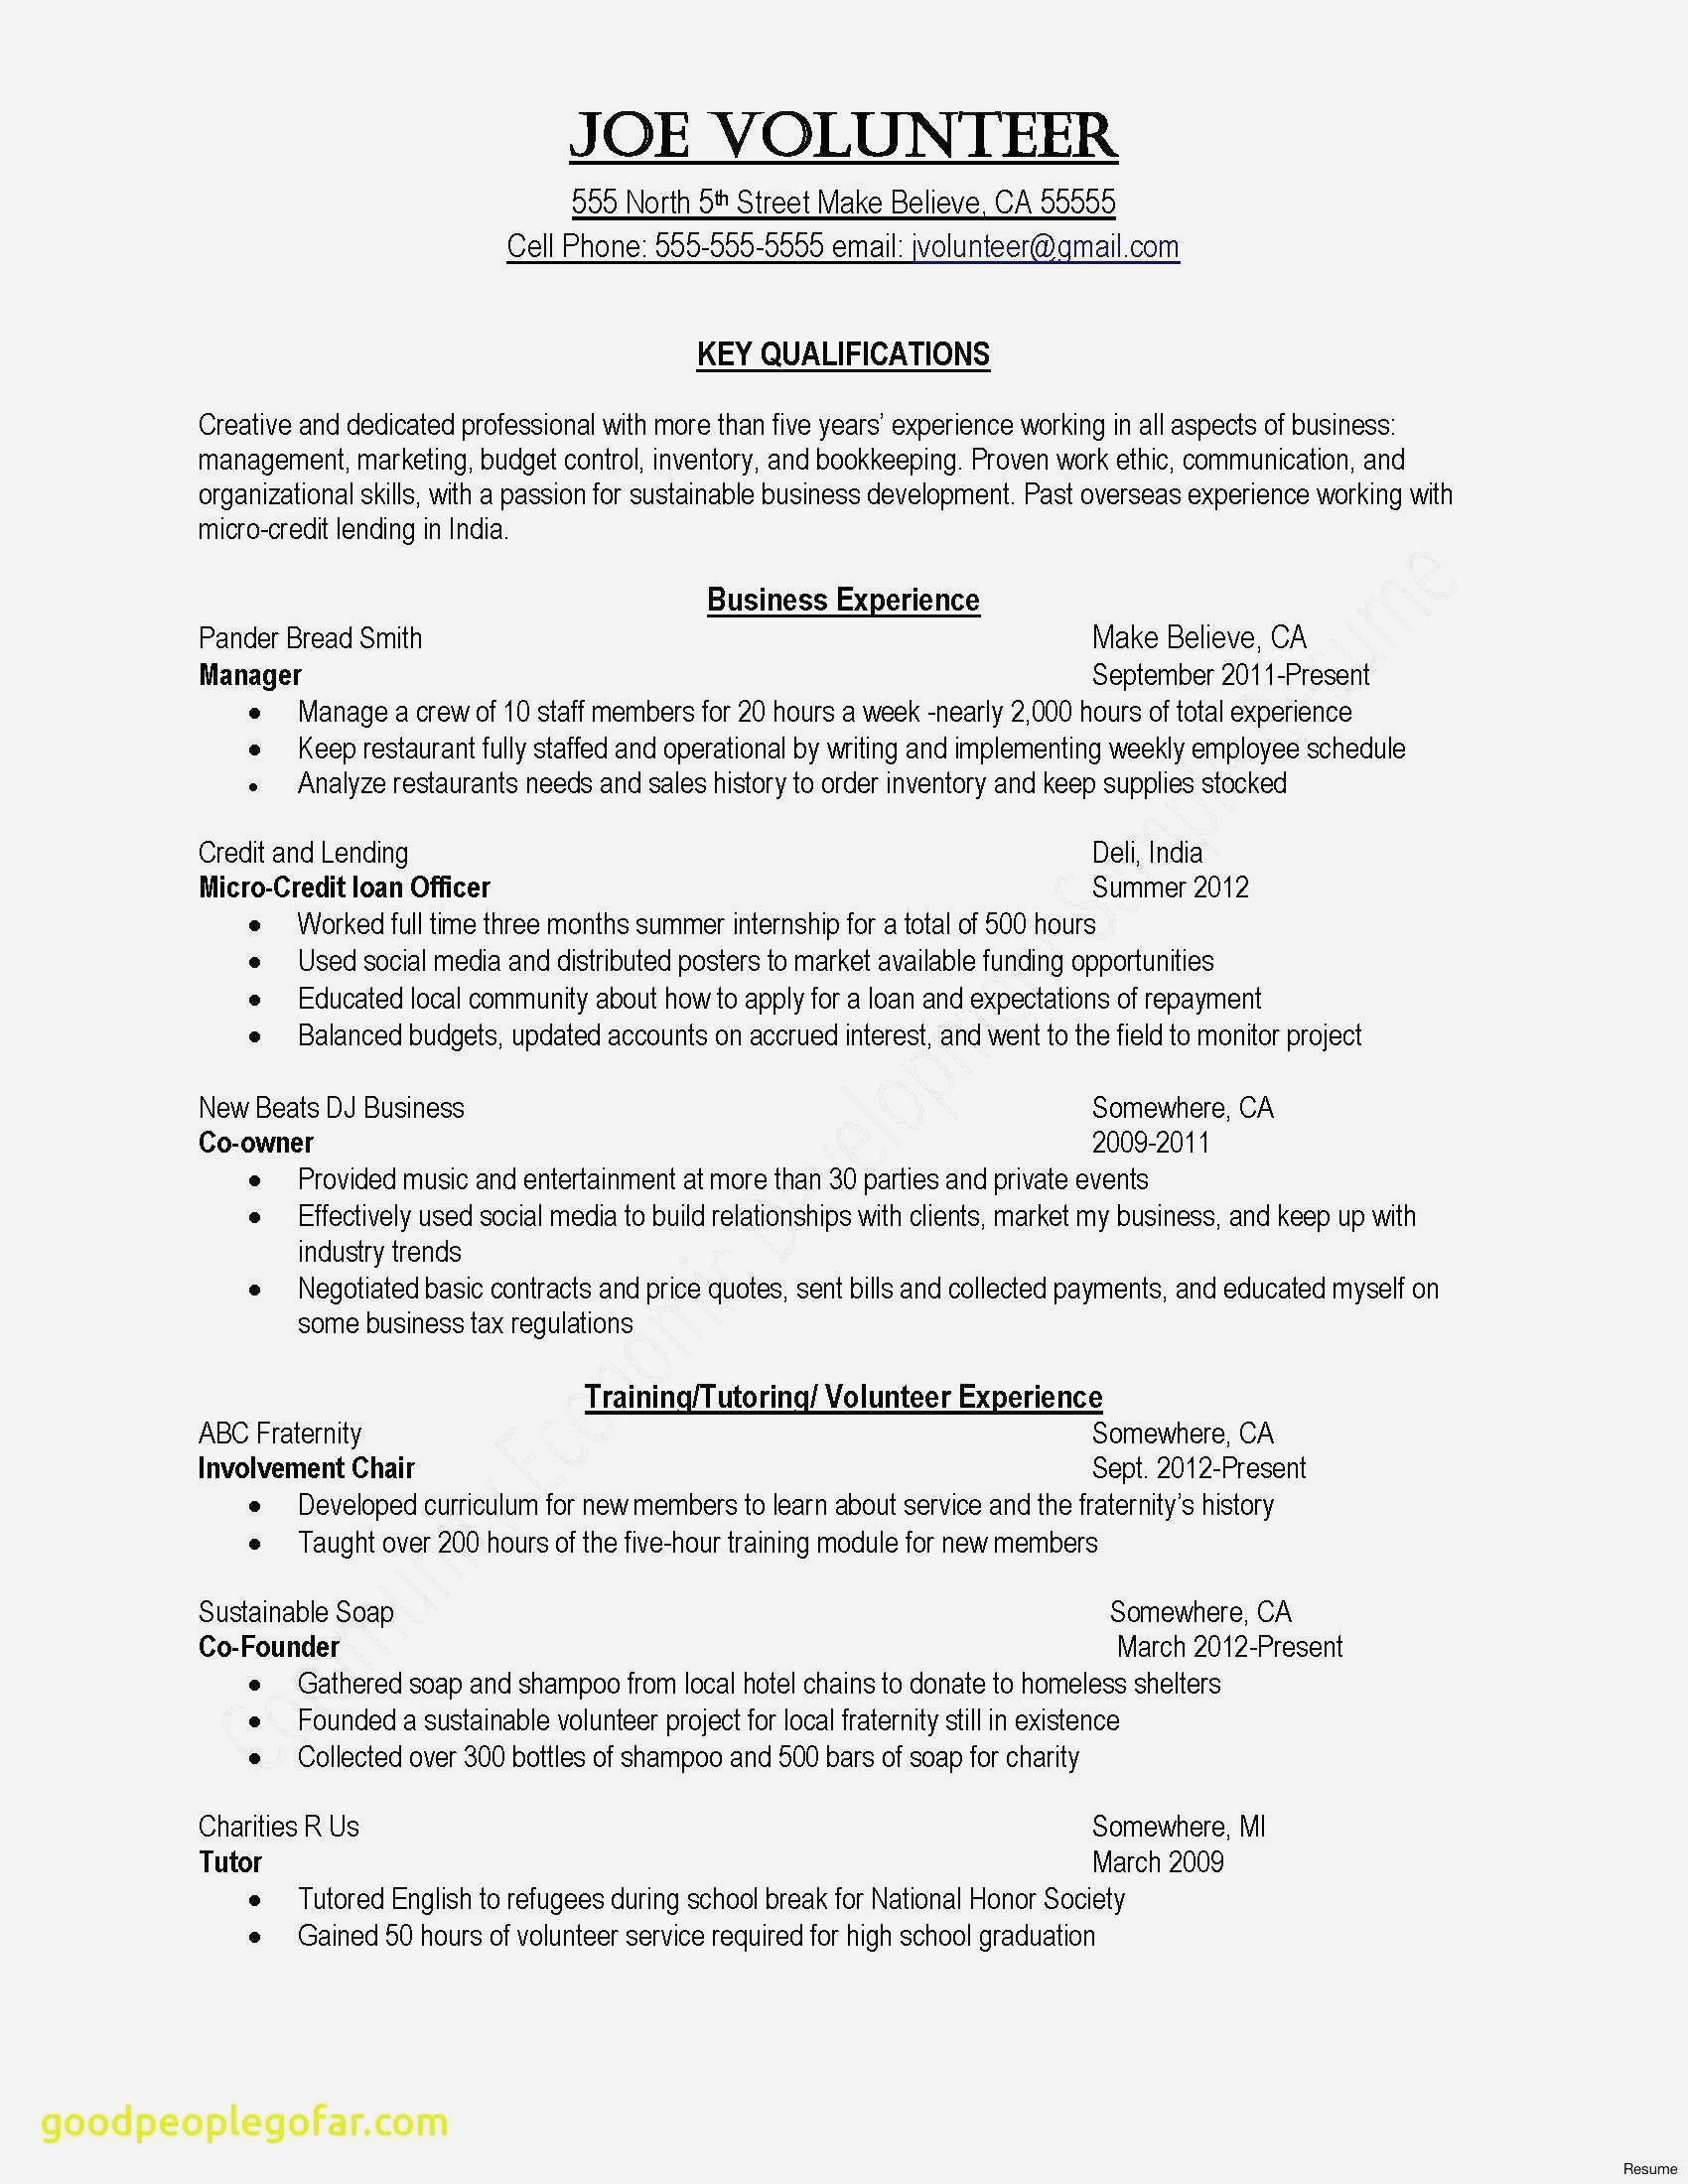 Good Words to Use On A Resume to Describe Yourself - Resume Key Words New Elegant Resume Tutor Unique Painter Resume 0d